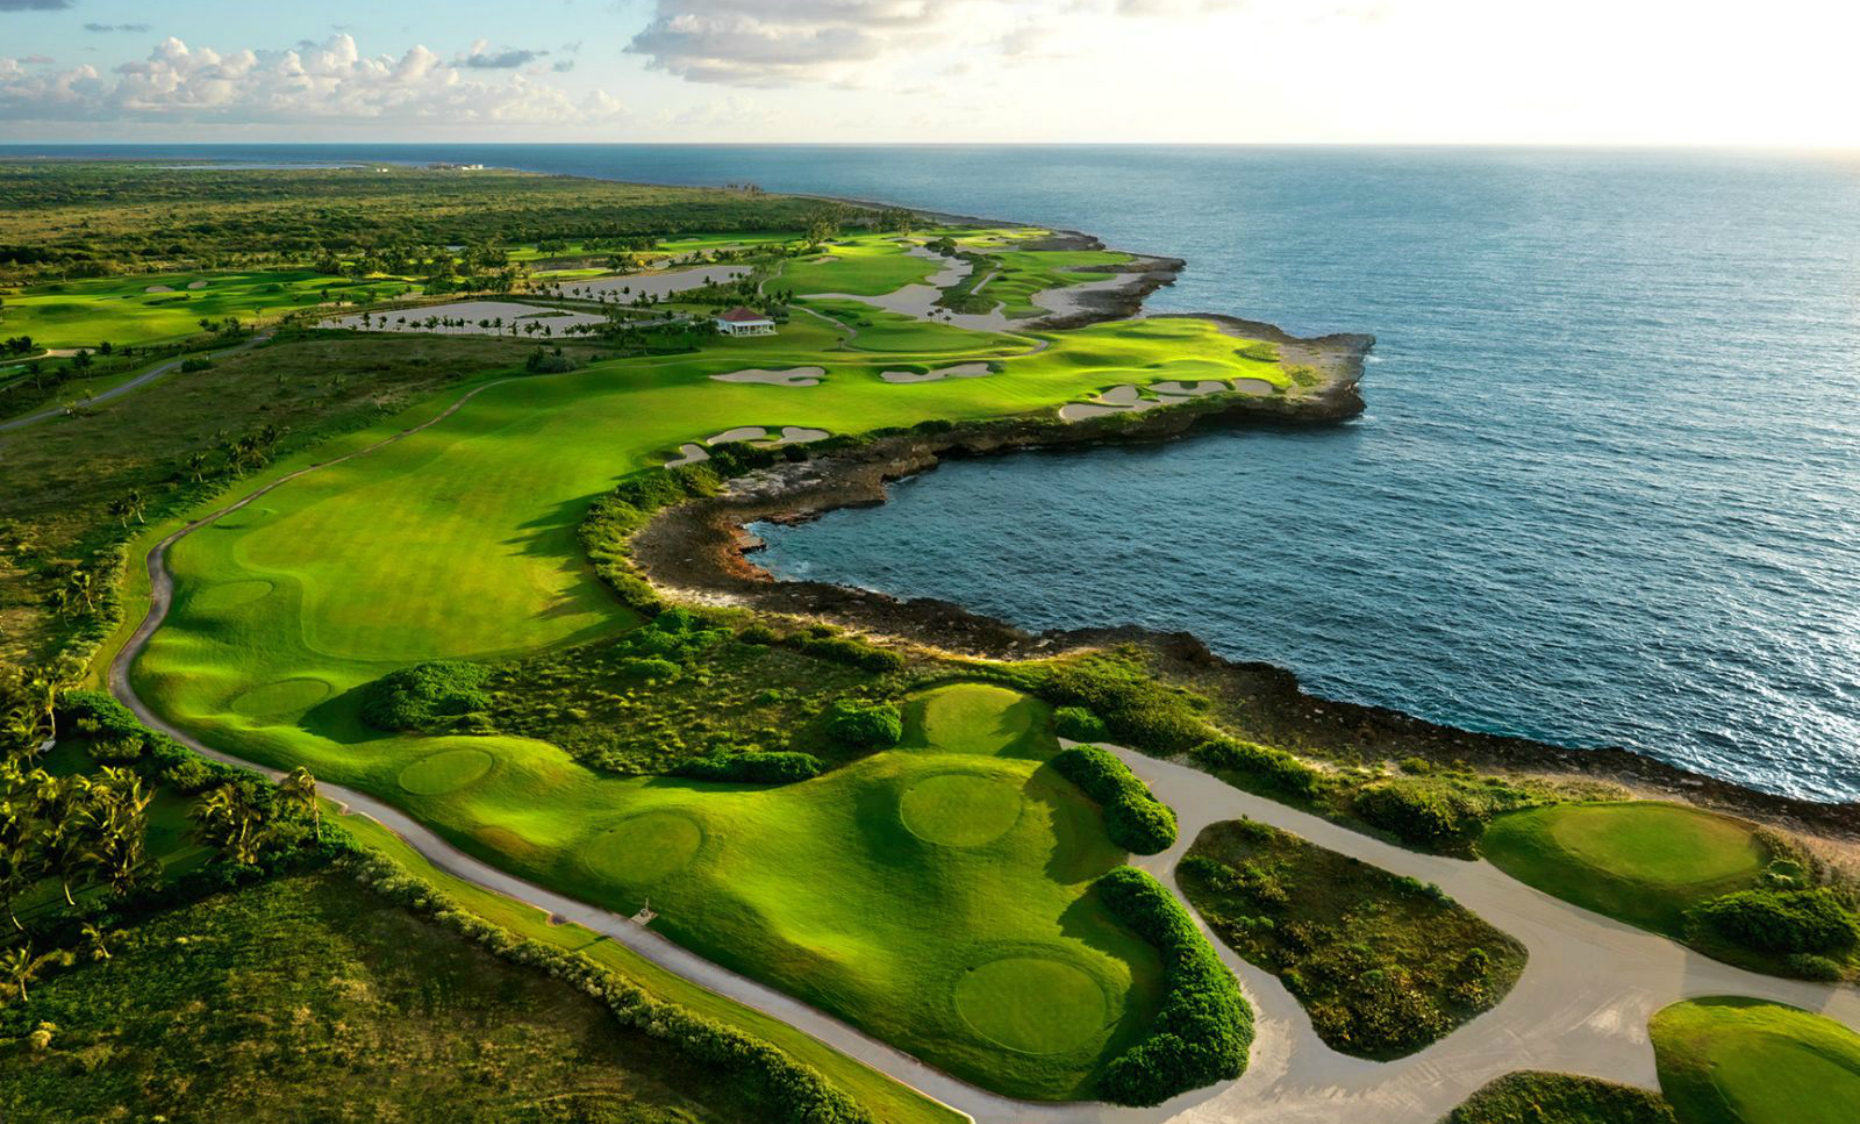 golf courses - There are plenty of scenic golf courses all over Punta Cana. Ask us about them and we can give you all the information you may need.